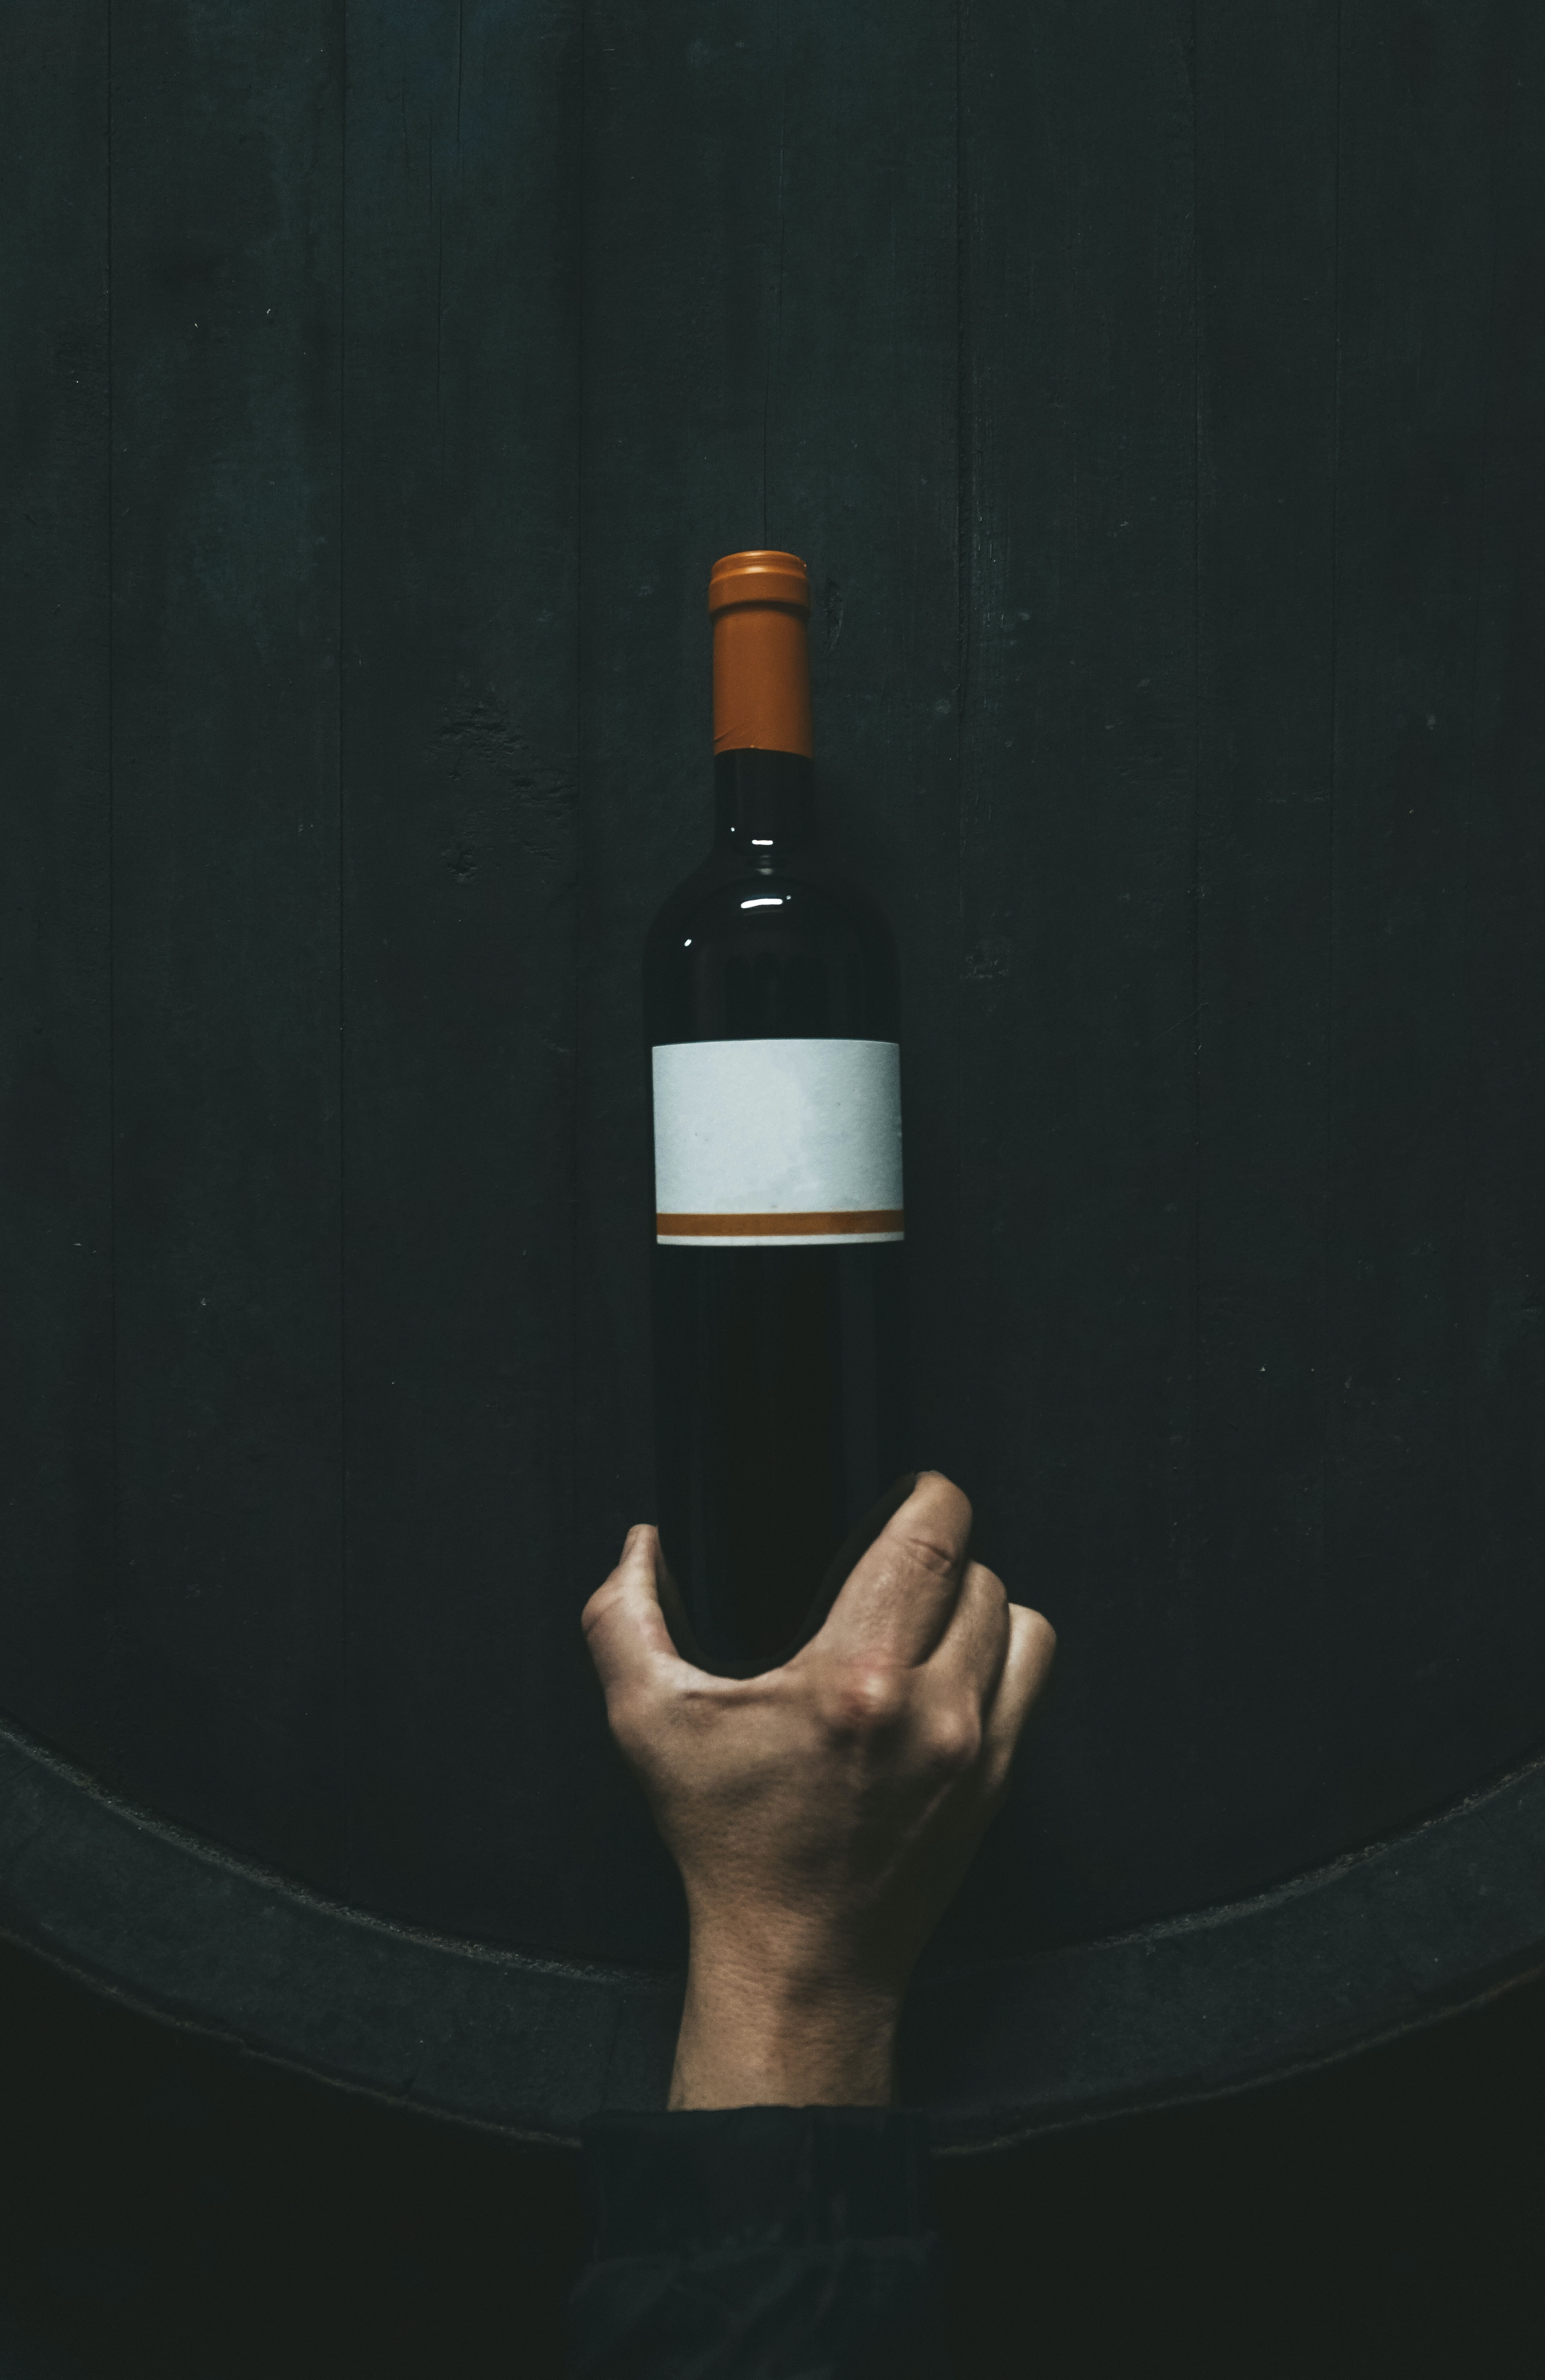 Wine Bottle Pictures Hd Download Free Images On Unsplash